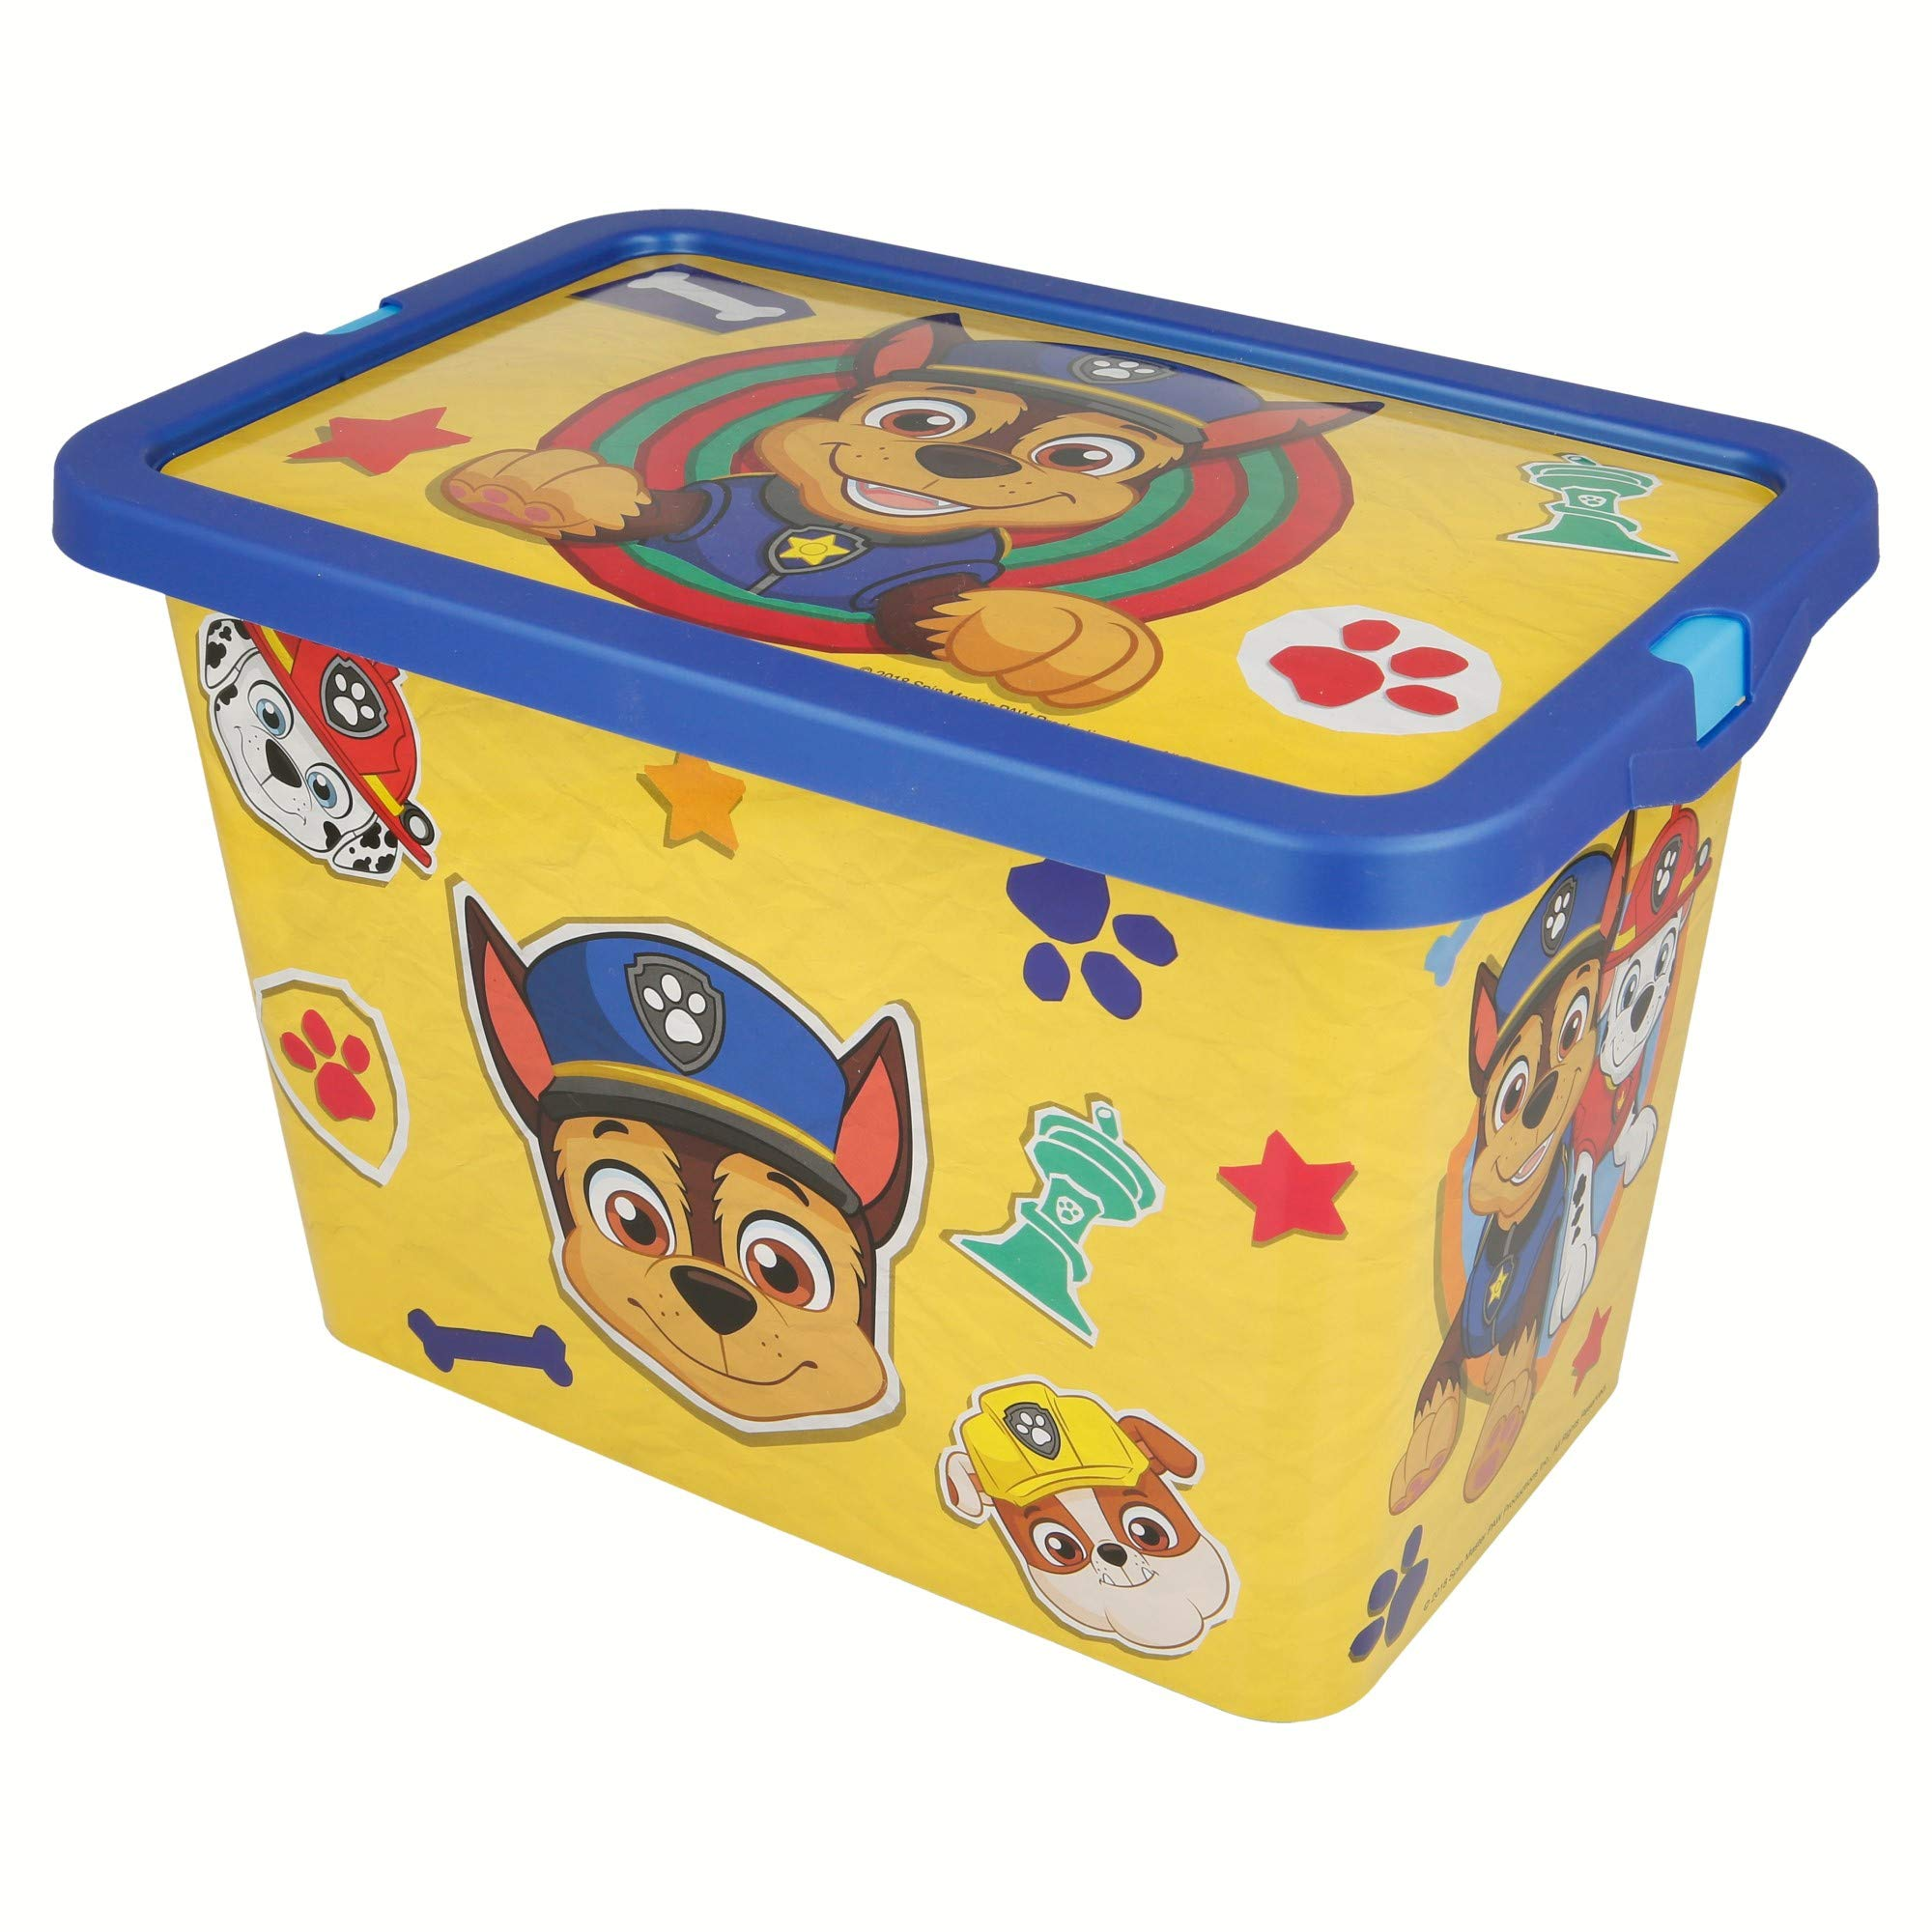 Paw Patrol Paw Patrol Paw Patrol -ST-02544 Storage Box Click 7L Boy Plain, Multi-Colour, Medium (Stor ST-02544)